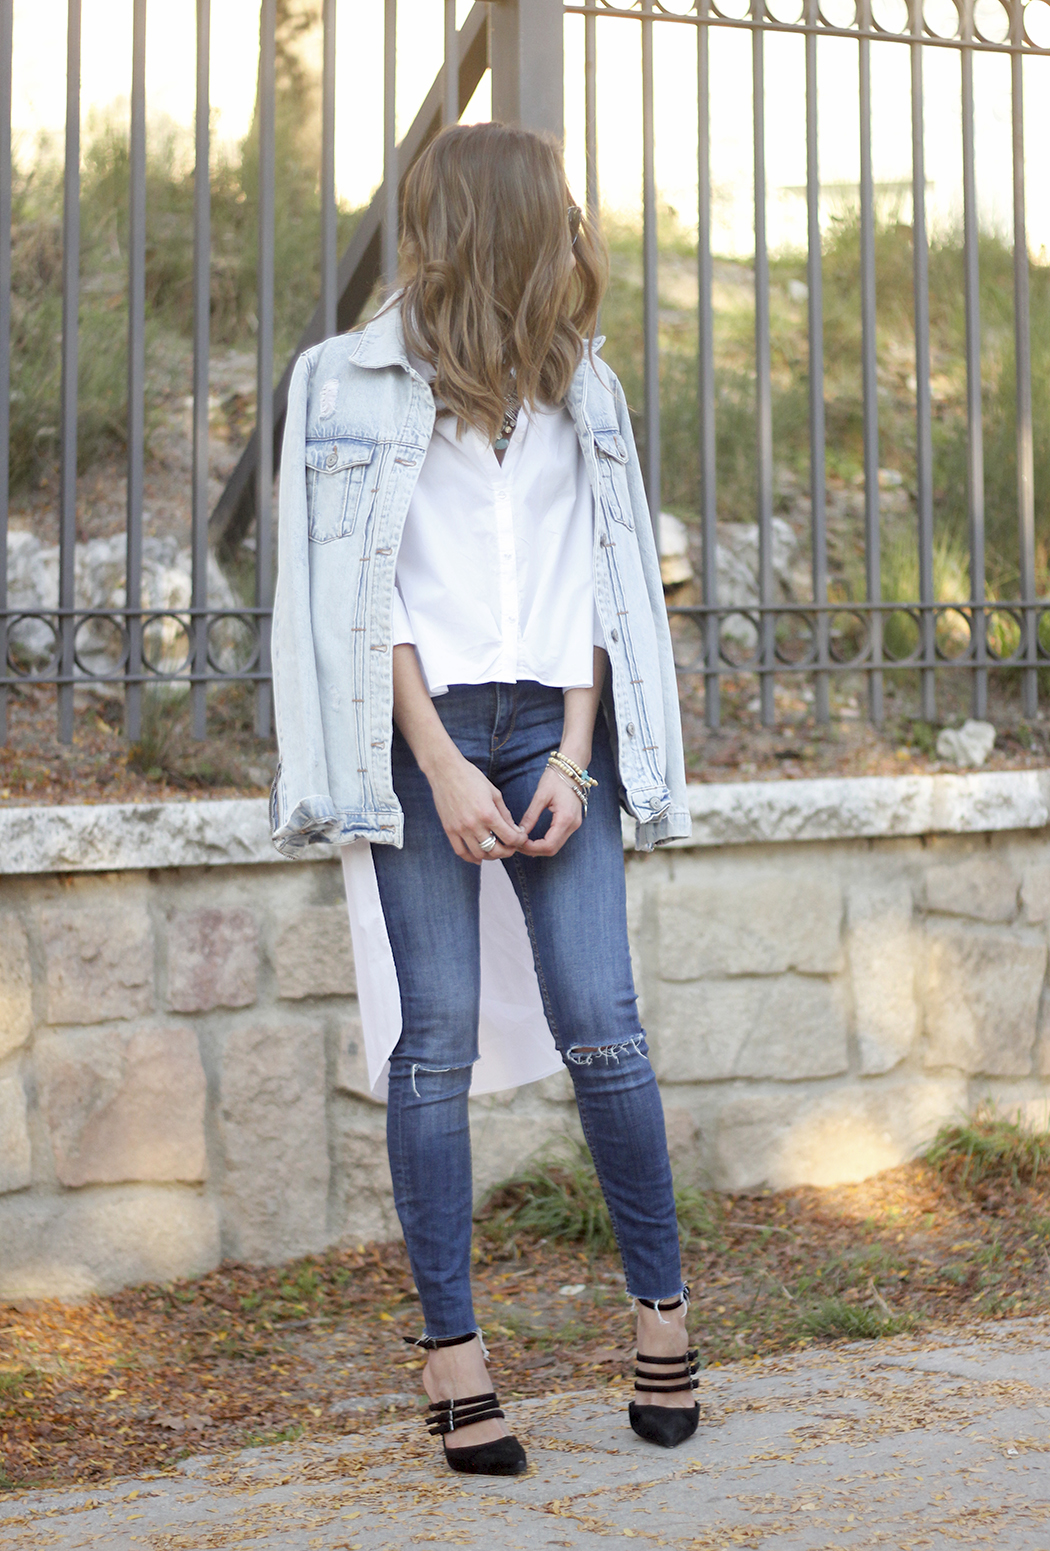 Denim Jacket Jeans White Shirt Black Heels outfit20